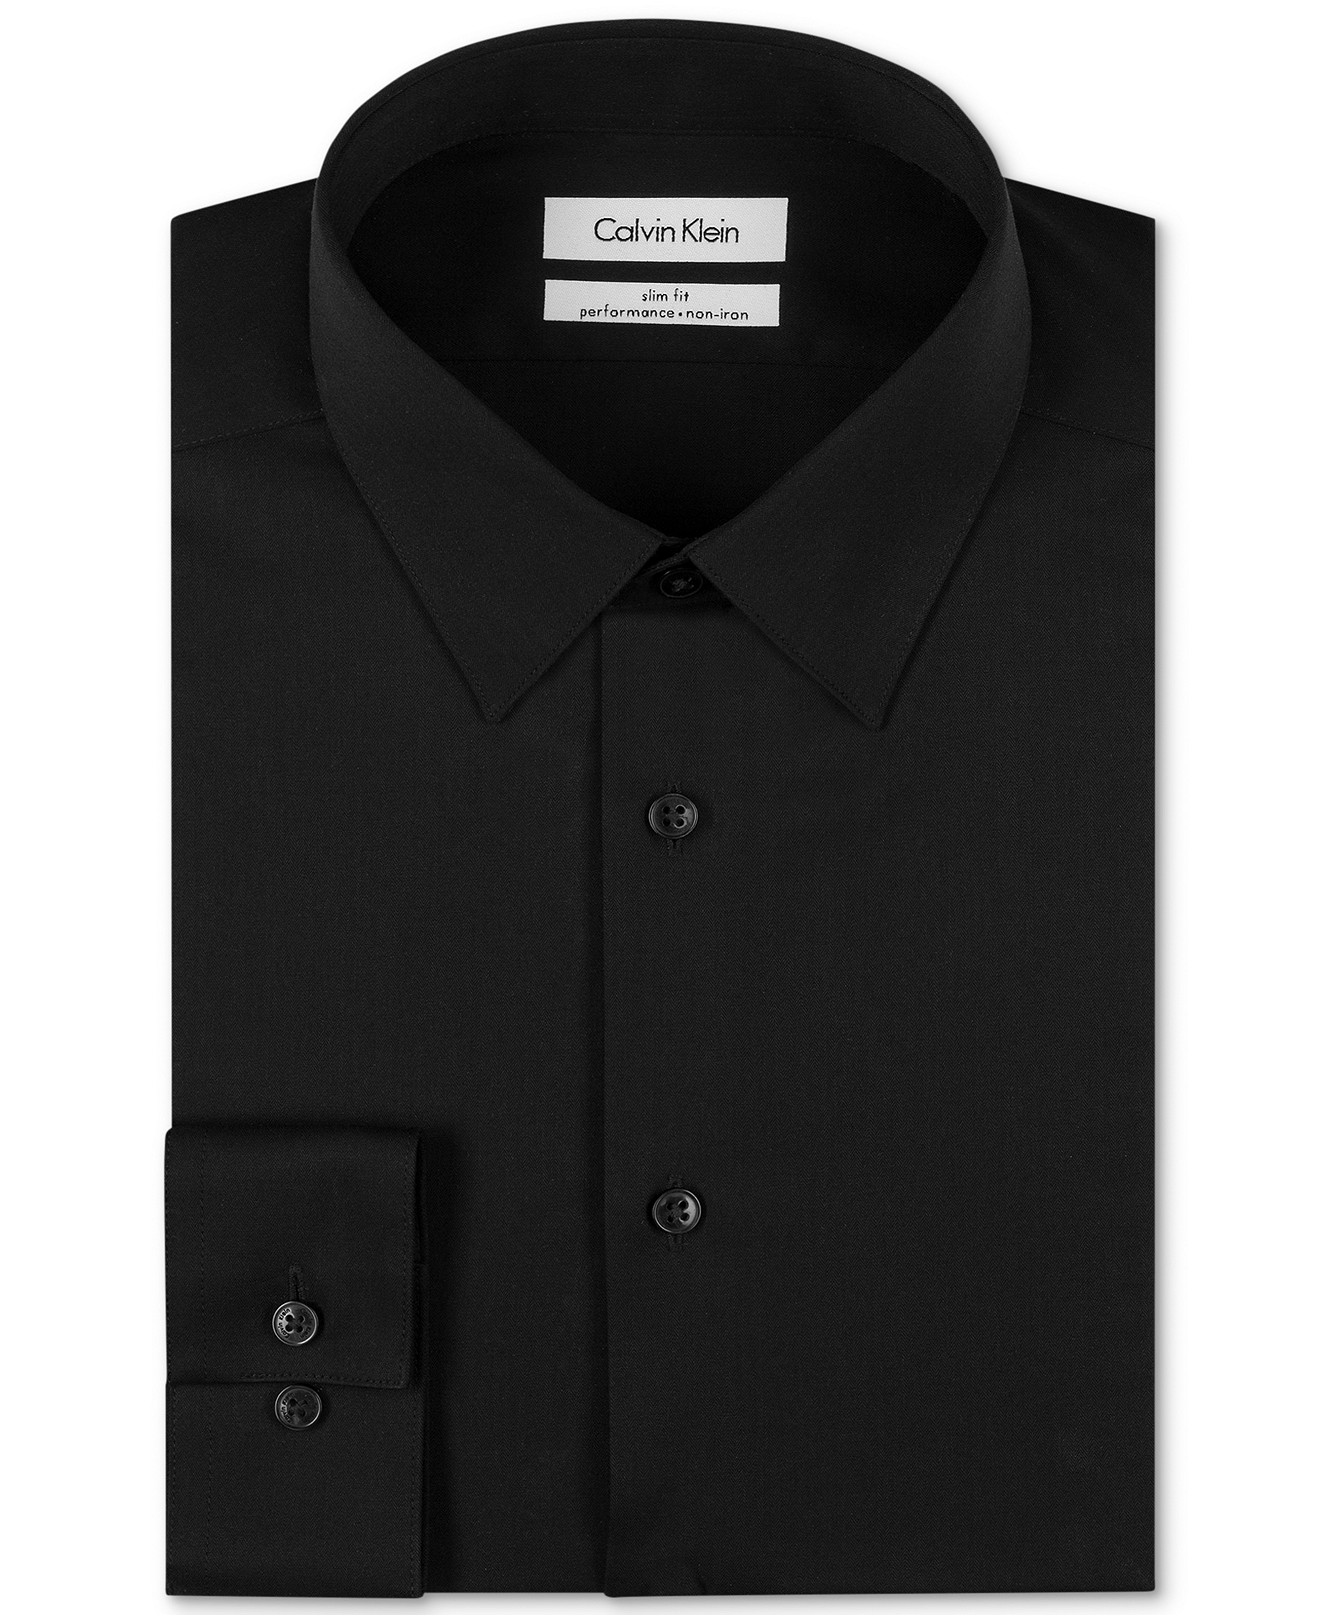 Calvin klein steel slim fit non iron solid dress shirt ebay for Slim fit non iron shirts